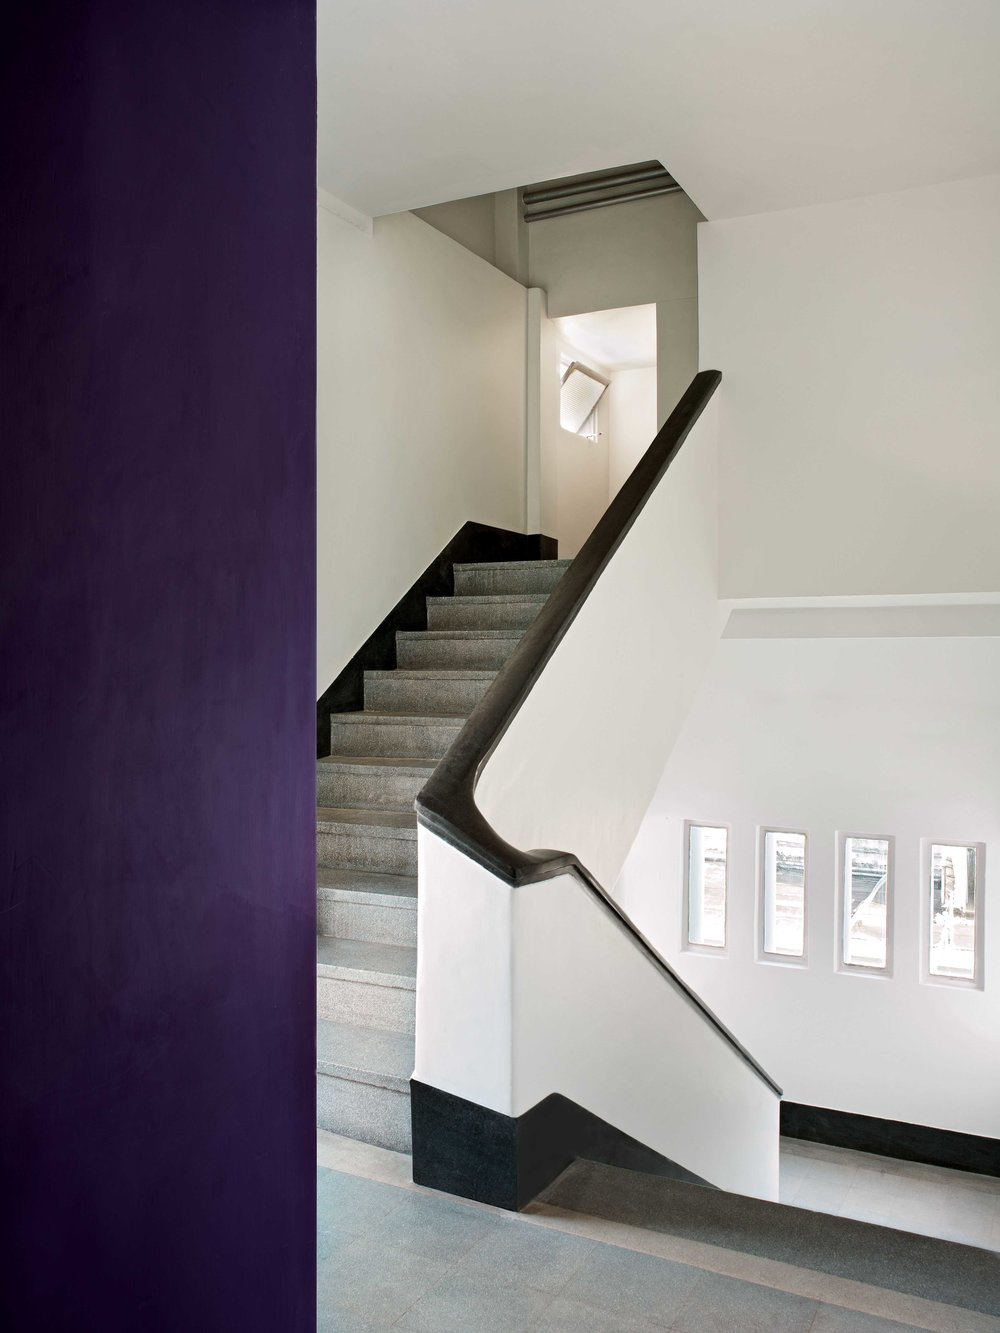 The staircase leading to Mukherjee's flat is made of granite, marble and plaster.